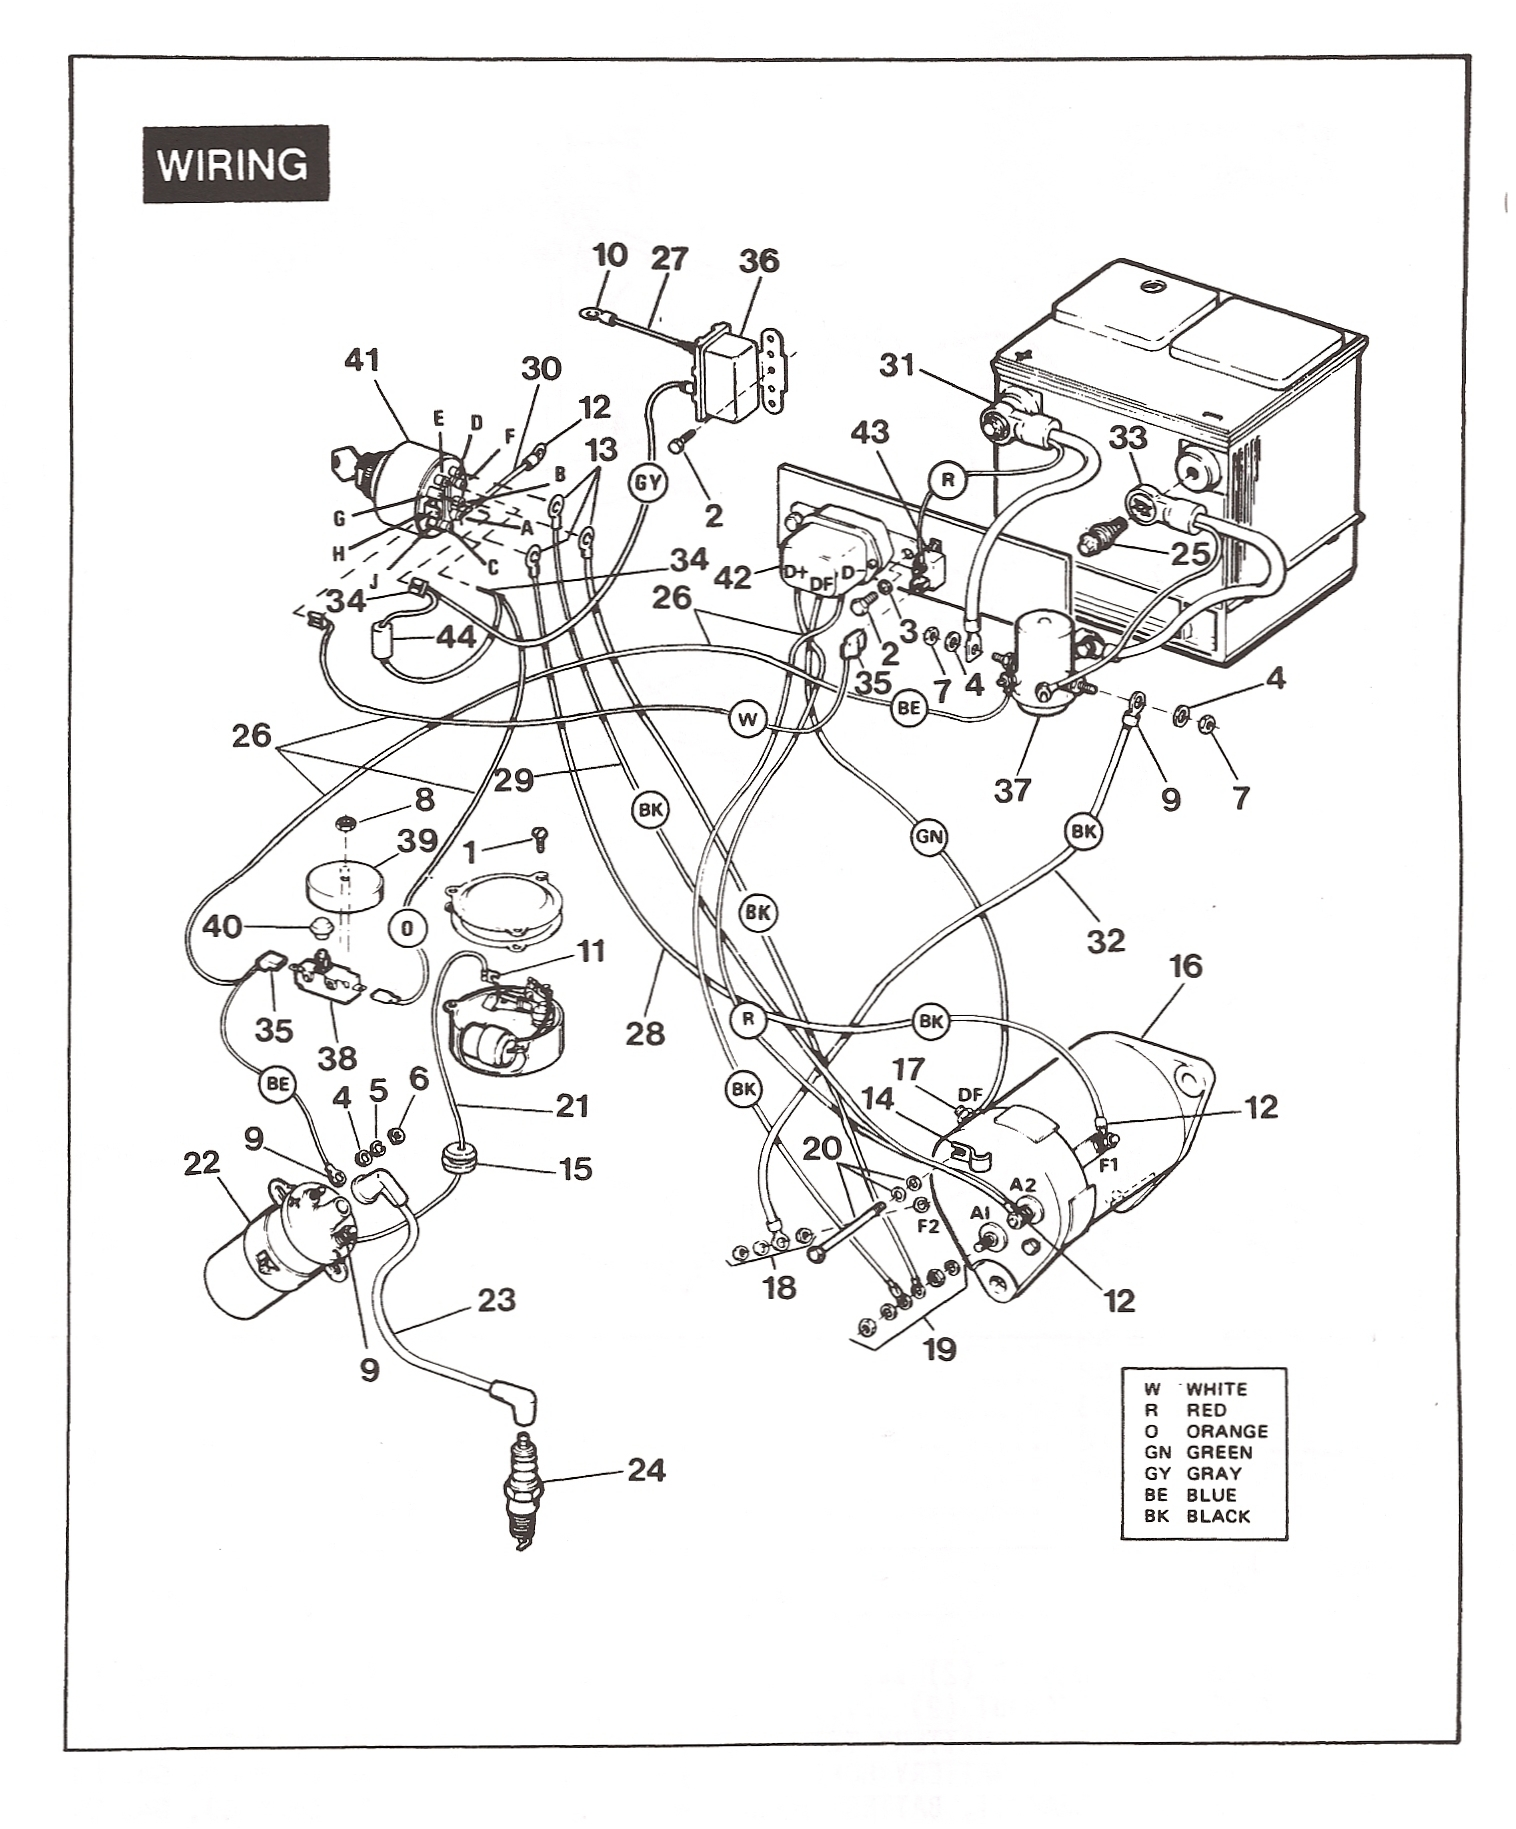 wiring diagram for par car wiring wiring diagrams online vintagegolfcartparts com description 1982 to 1986 gas columbia par car harley wiring columbia gas golf cart wiring diagram